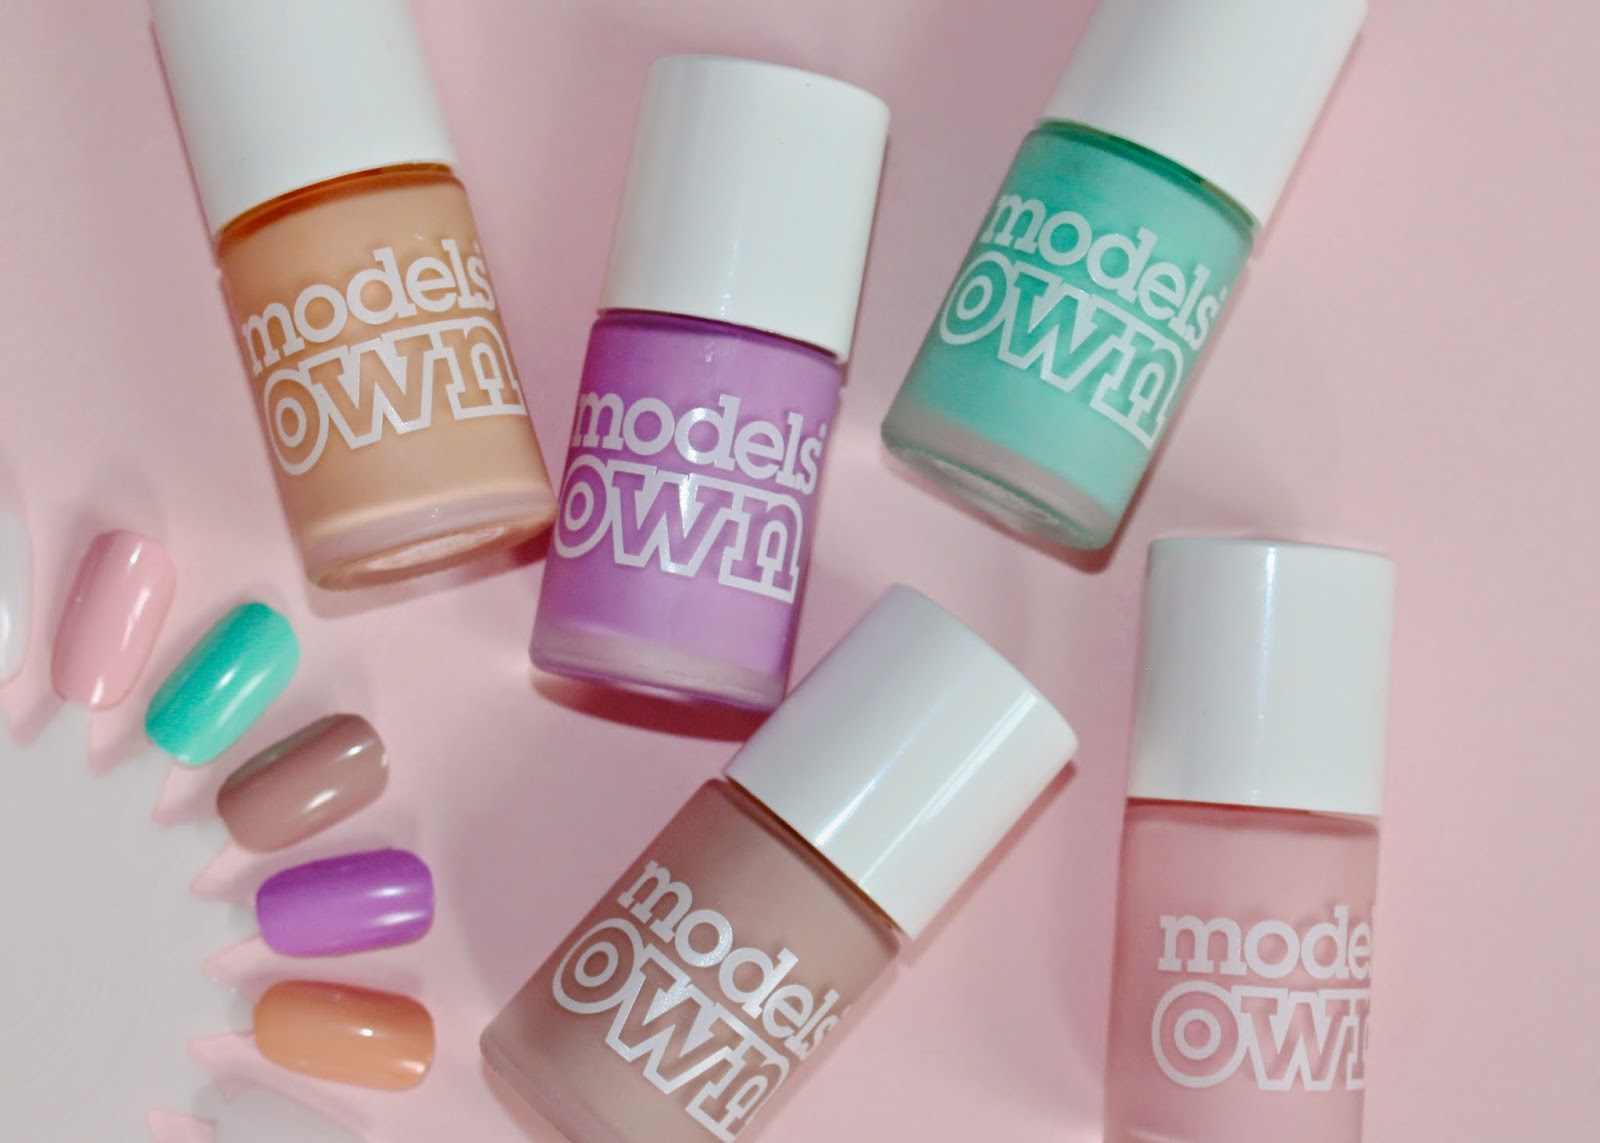 Models Own Icing Collection: Like A Fondant Fancy For